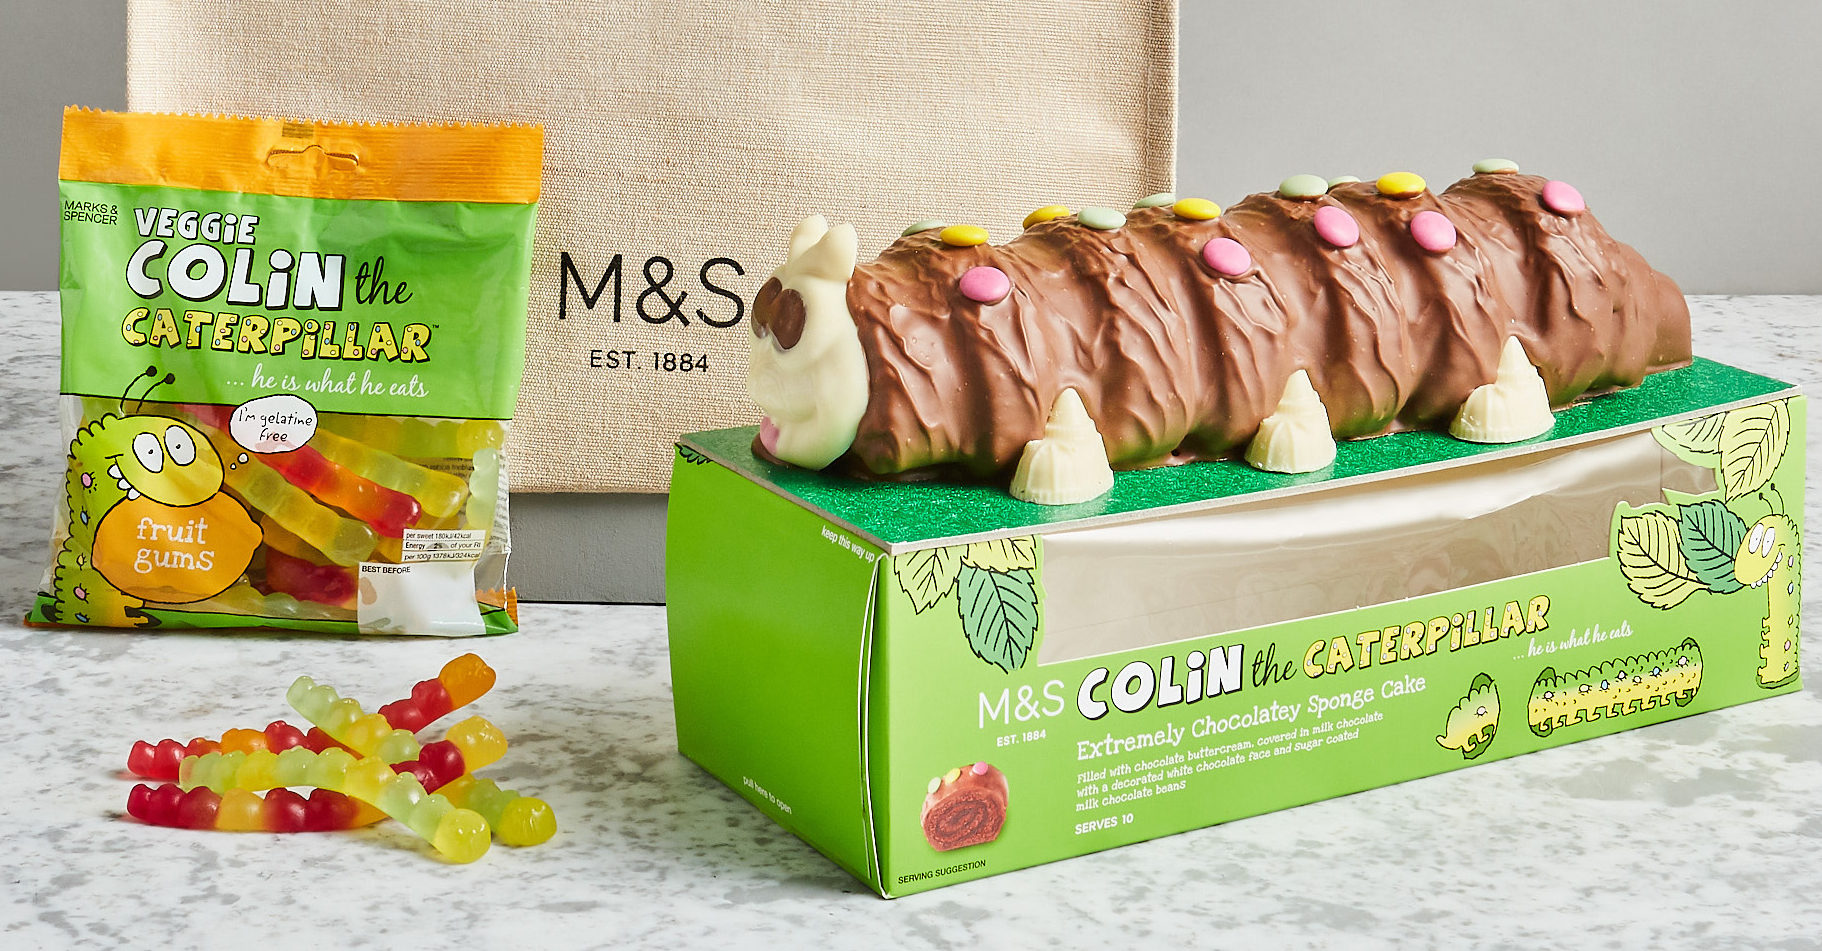 M&S launches birthday cake delivery service – and Colin the Caterpillar is available for home delivery!